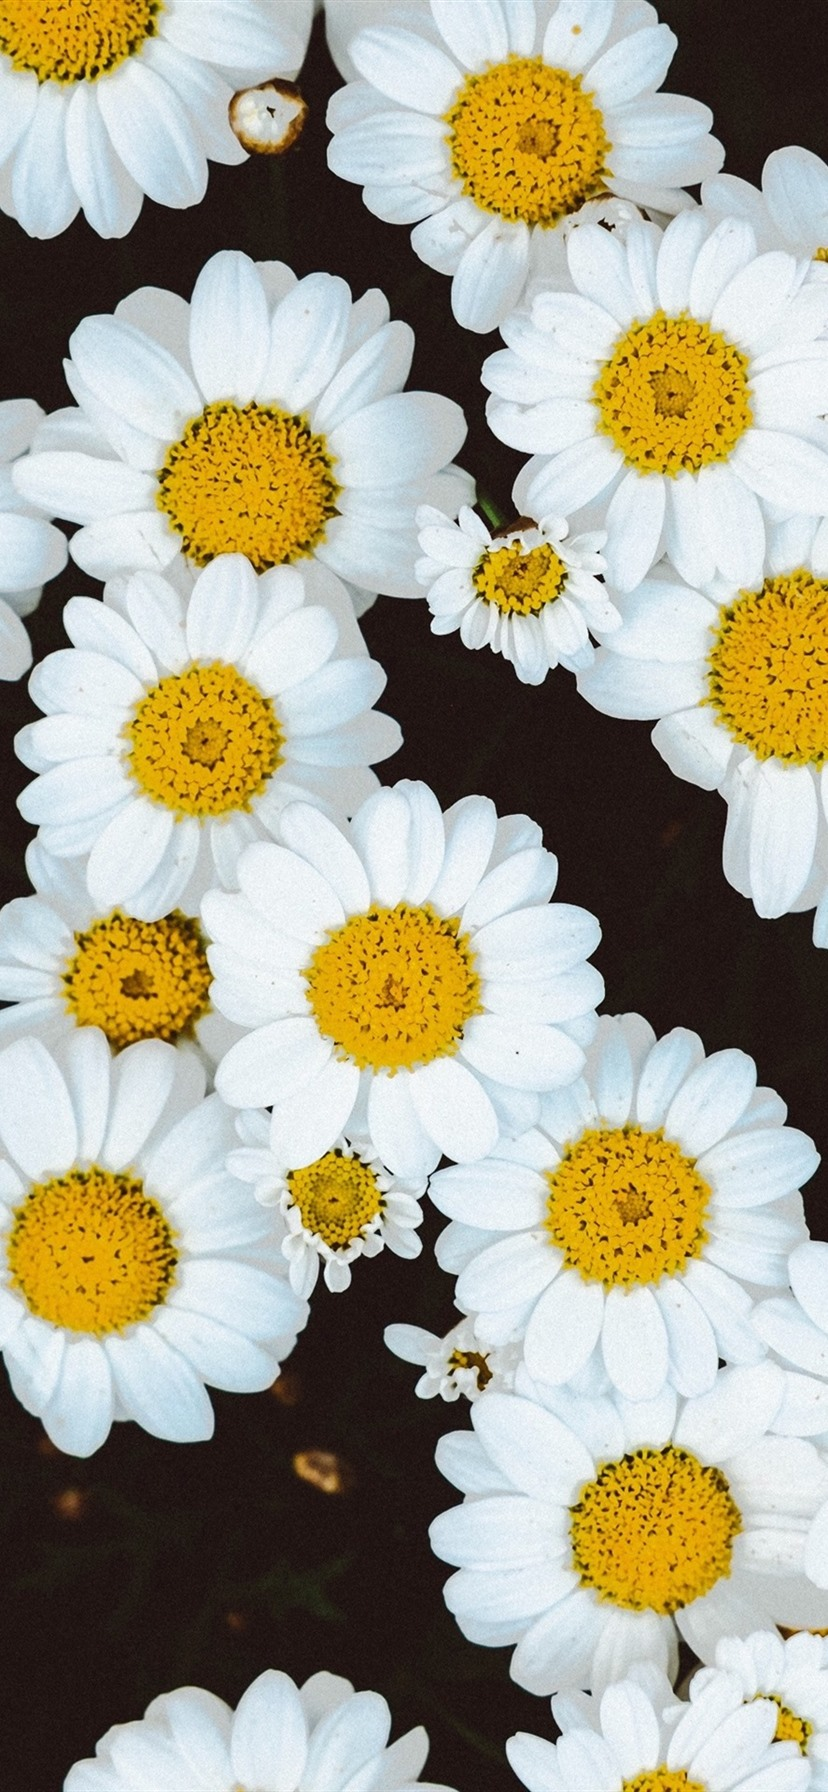 White daisies flowers background 1080x1920 iPhone 8/7/6/6S